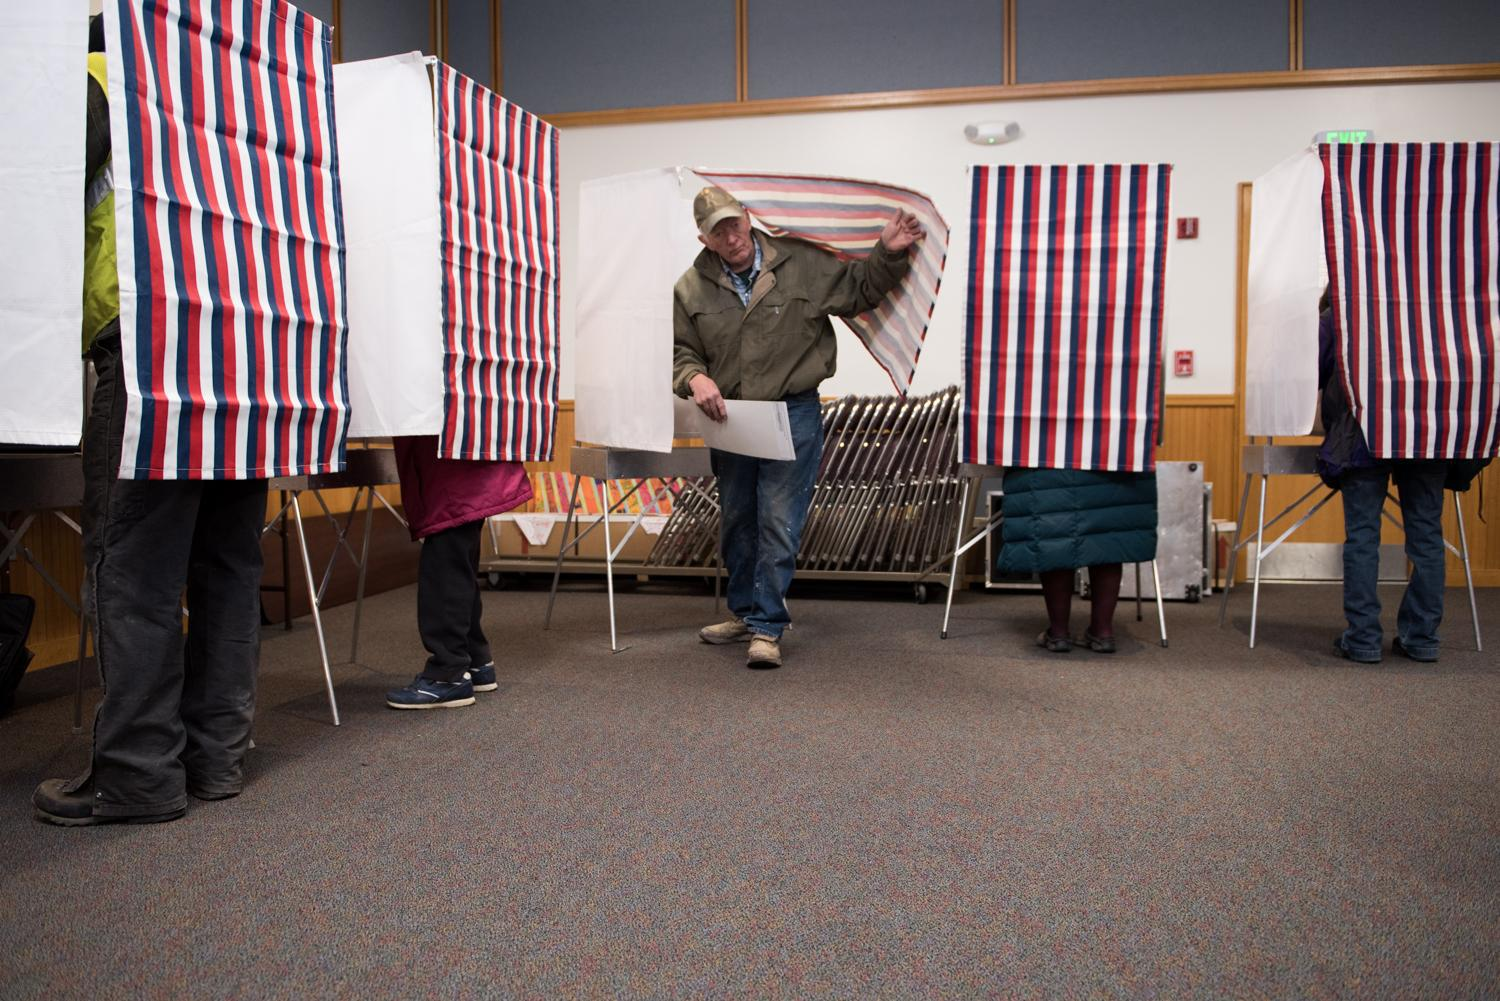 Bill Ferguson exits a voting booth at the Yupiit Piciryarait Cultural Center, one of two available precincts in Bethel, Alaska on November 8, 2016. (Photo by Katie Basile/KYUK)